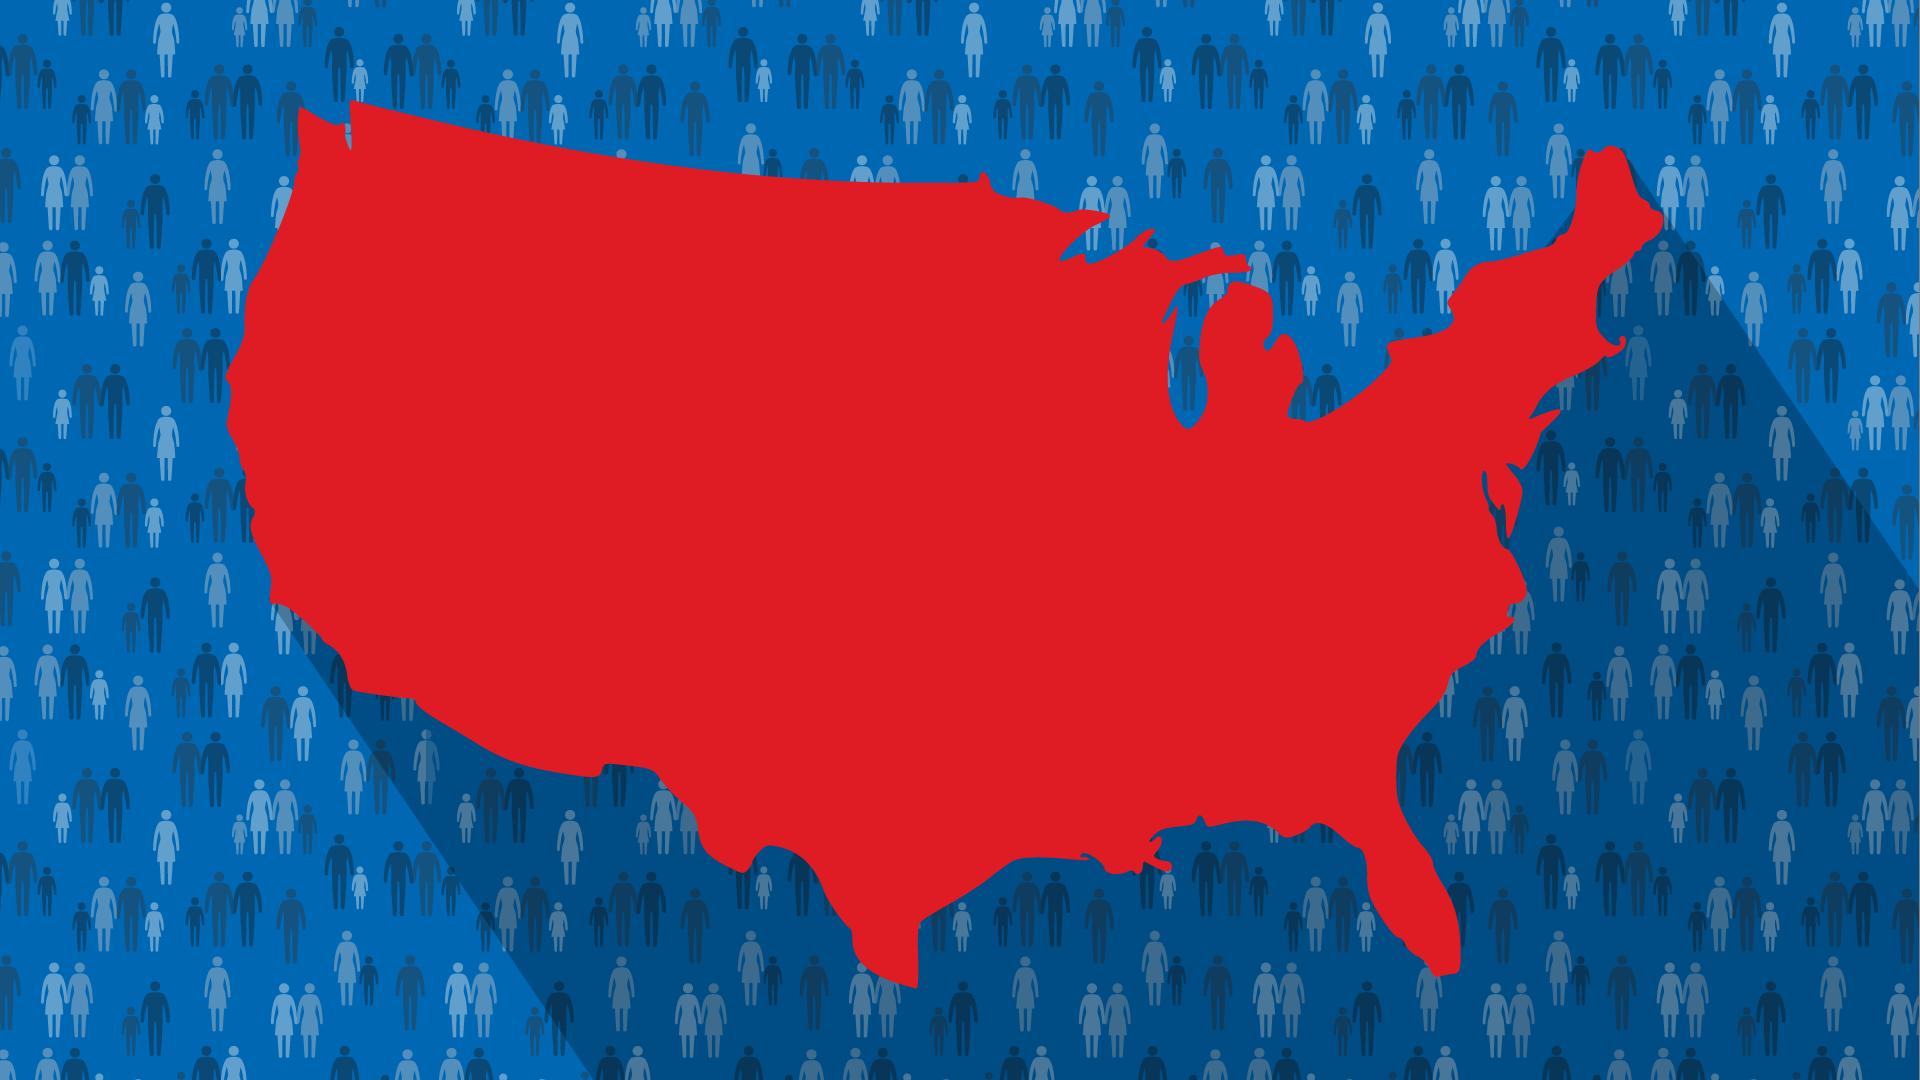 Data from the 2020 Census influences congressional representation and the allocation of more than $675 billion in federal funds for states and communities each year. (Illustration by iStock)